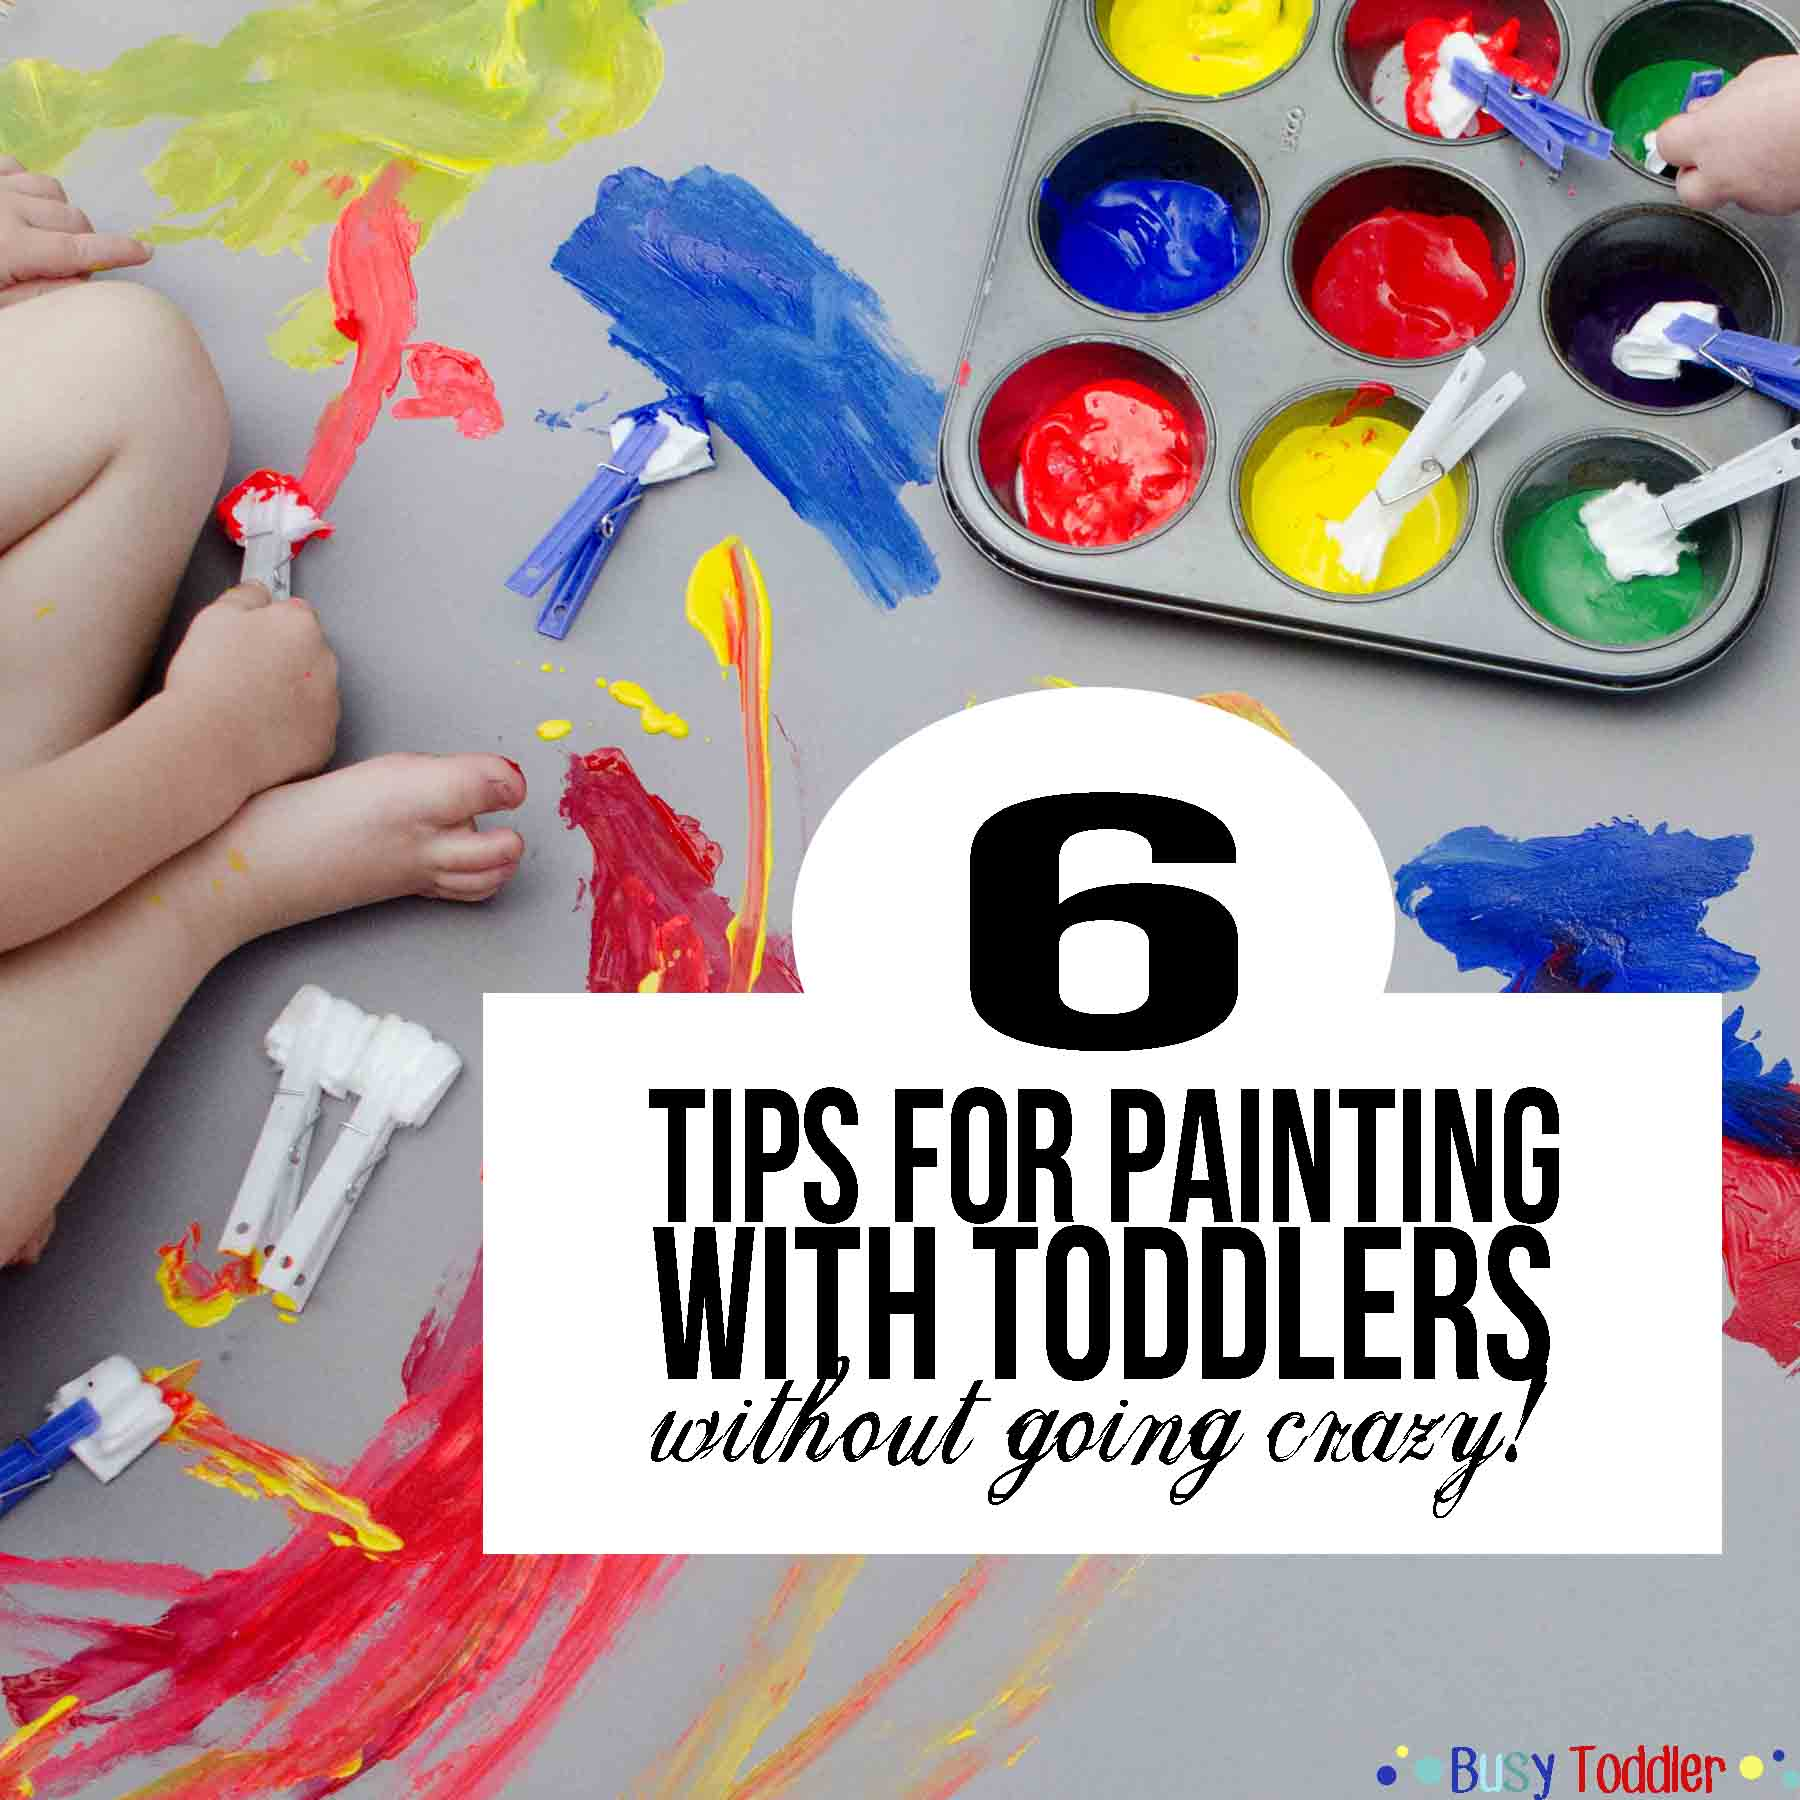 Tips & Tricks for Painting with Toddlers